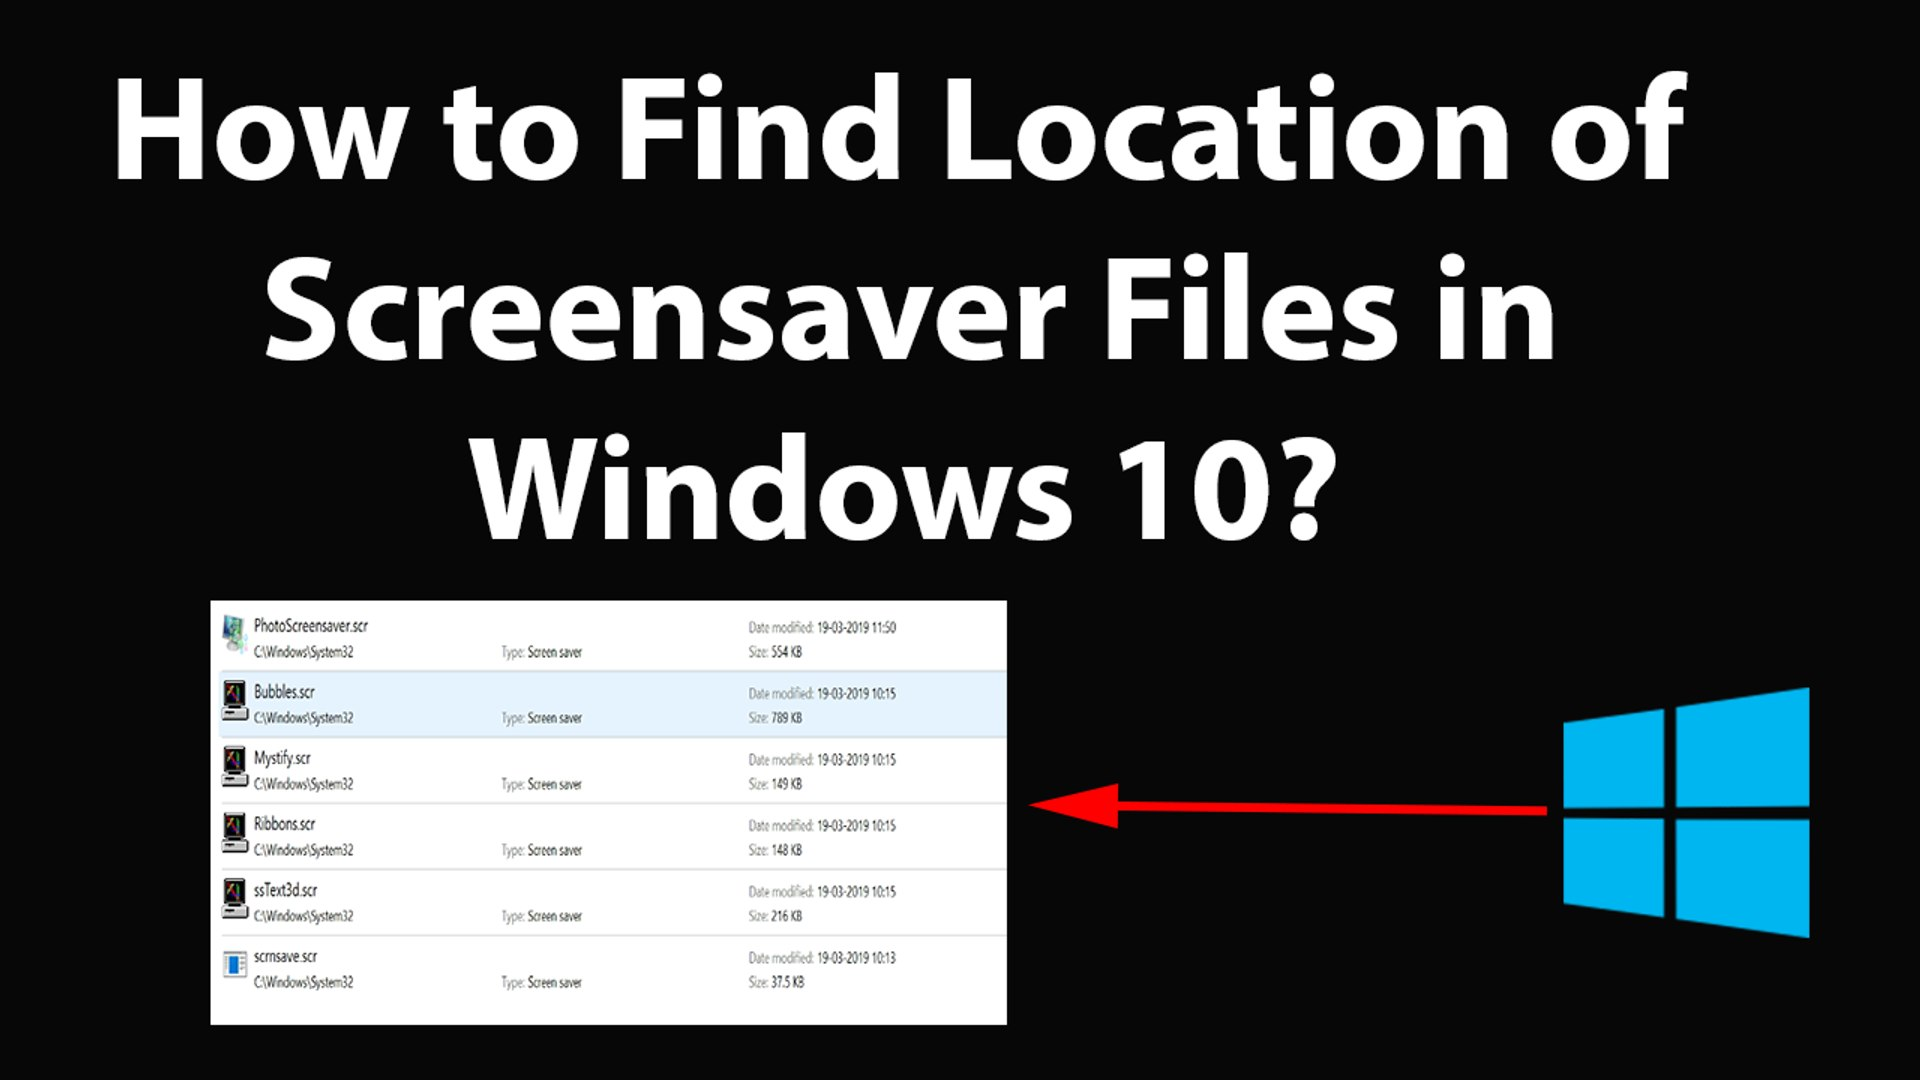 How to Find Location of Screensaver Files in Windows 10?